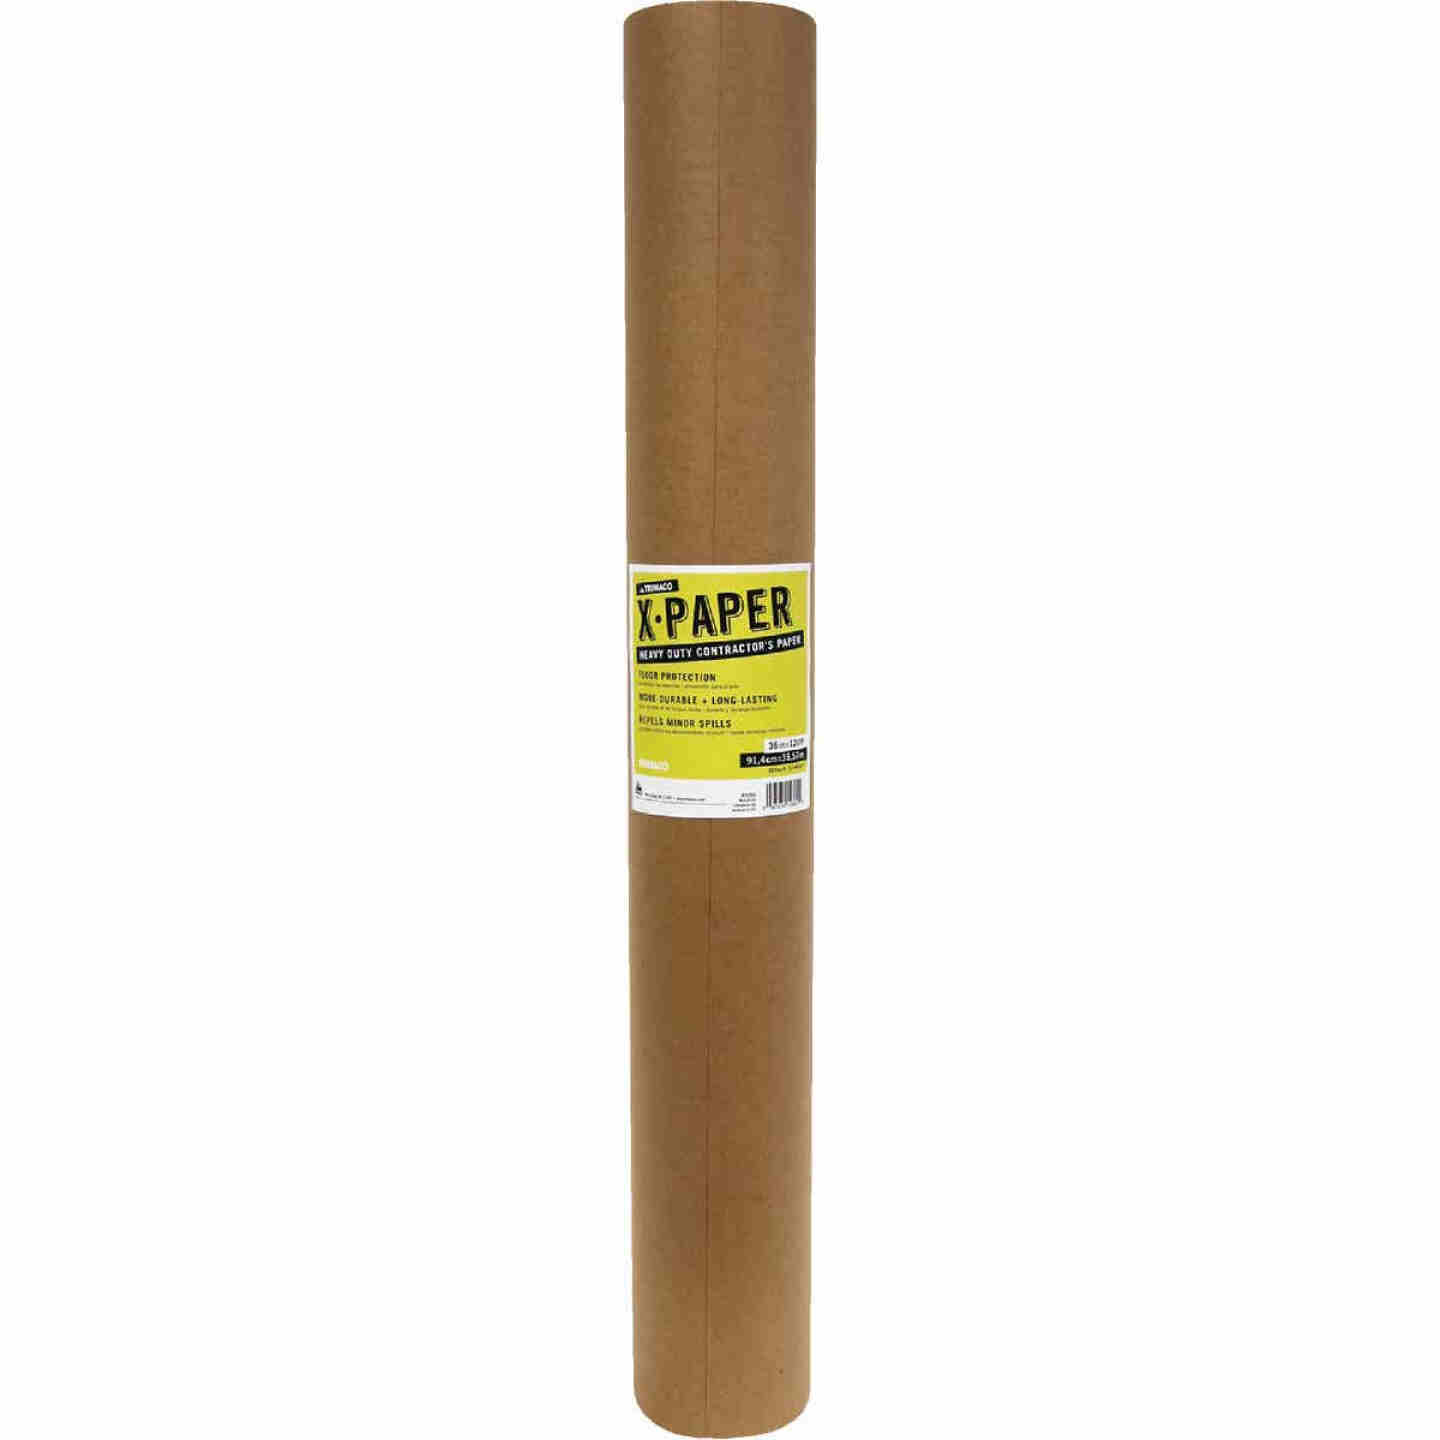 Trimaco X-Paper 36 In. W x 120 Ft. L Floor Protector Image 1